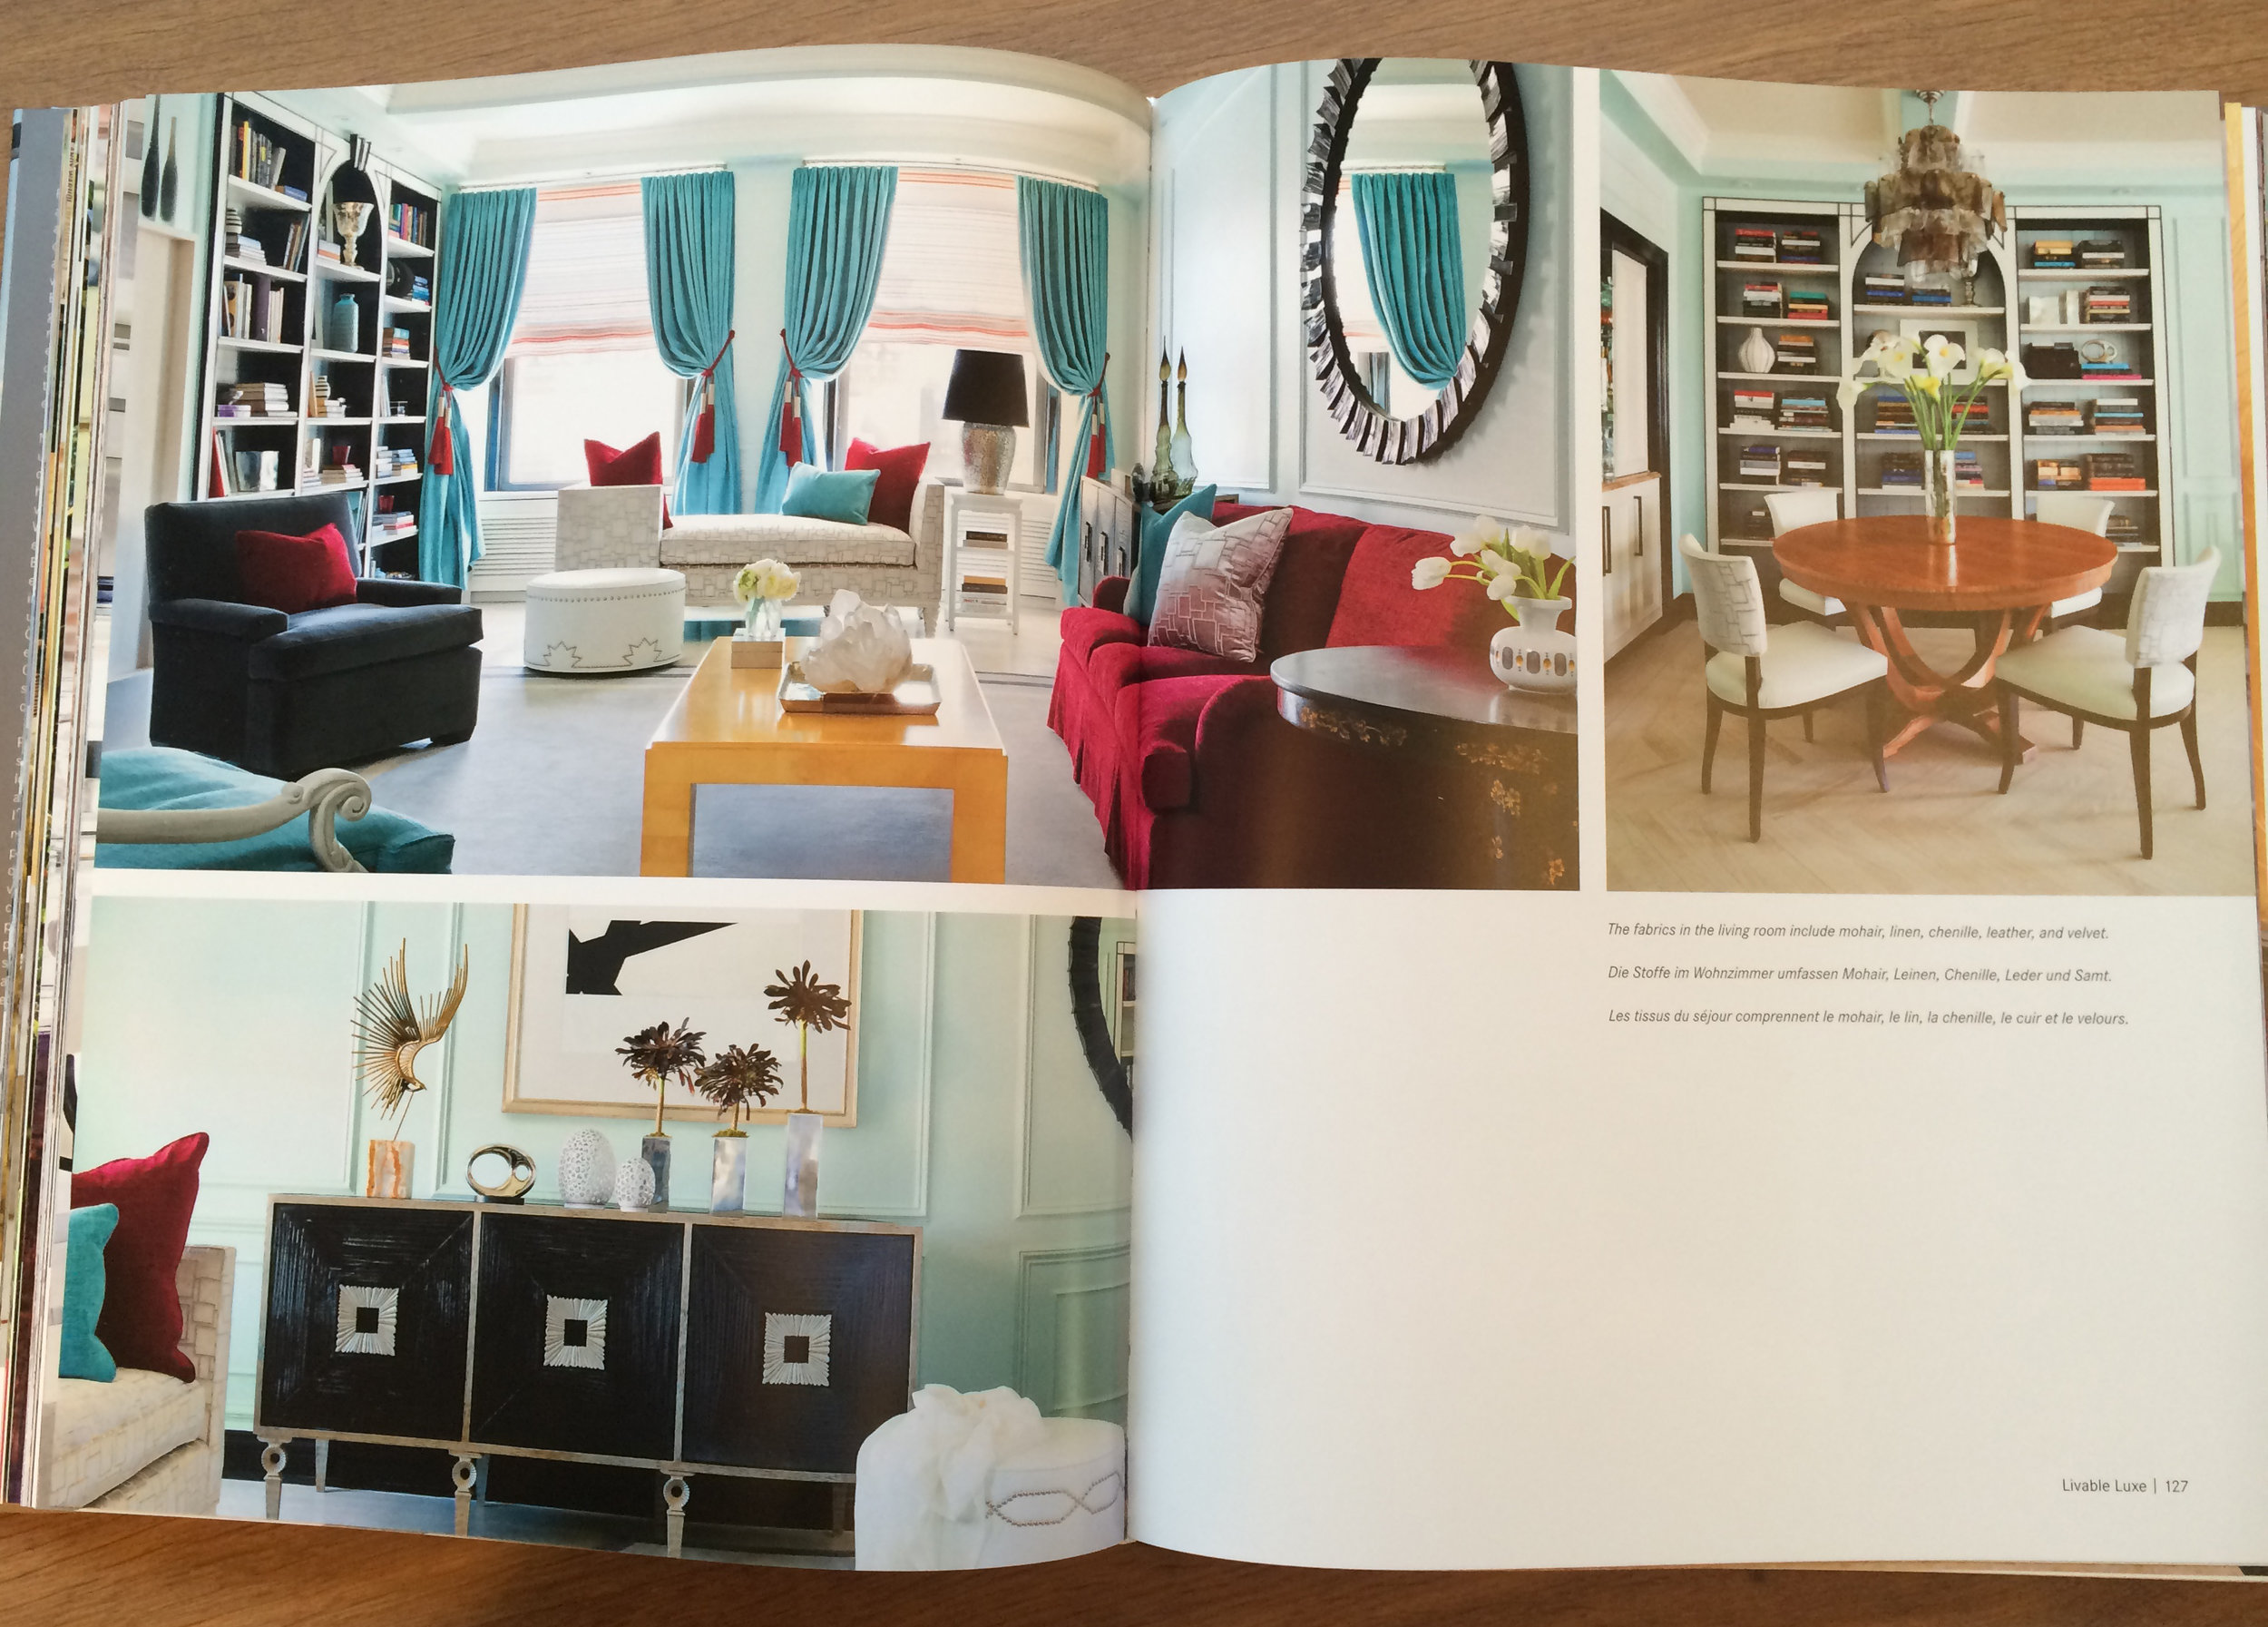 Living In Style New York Book 2014 - Page 8.JPG